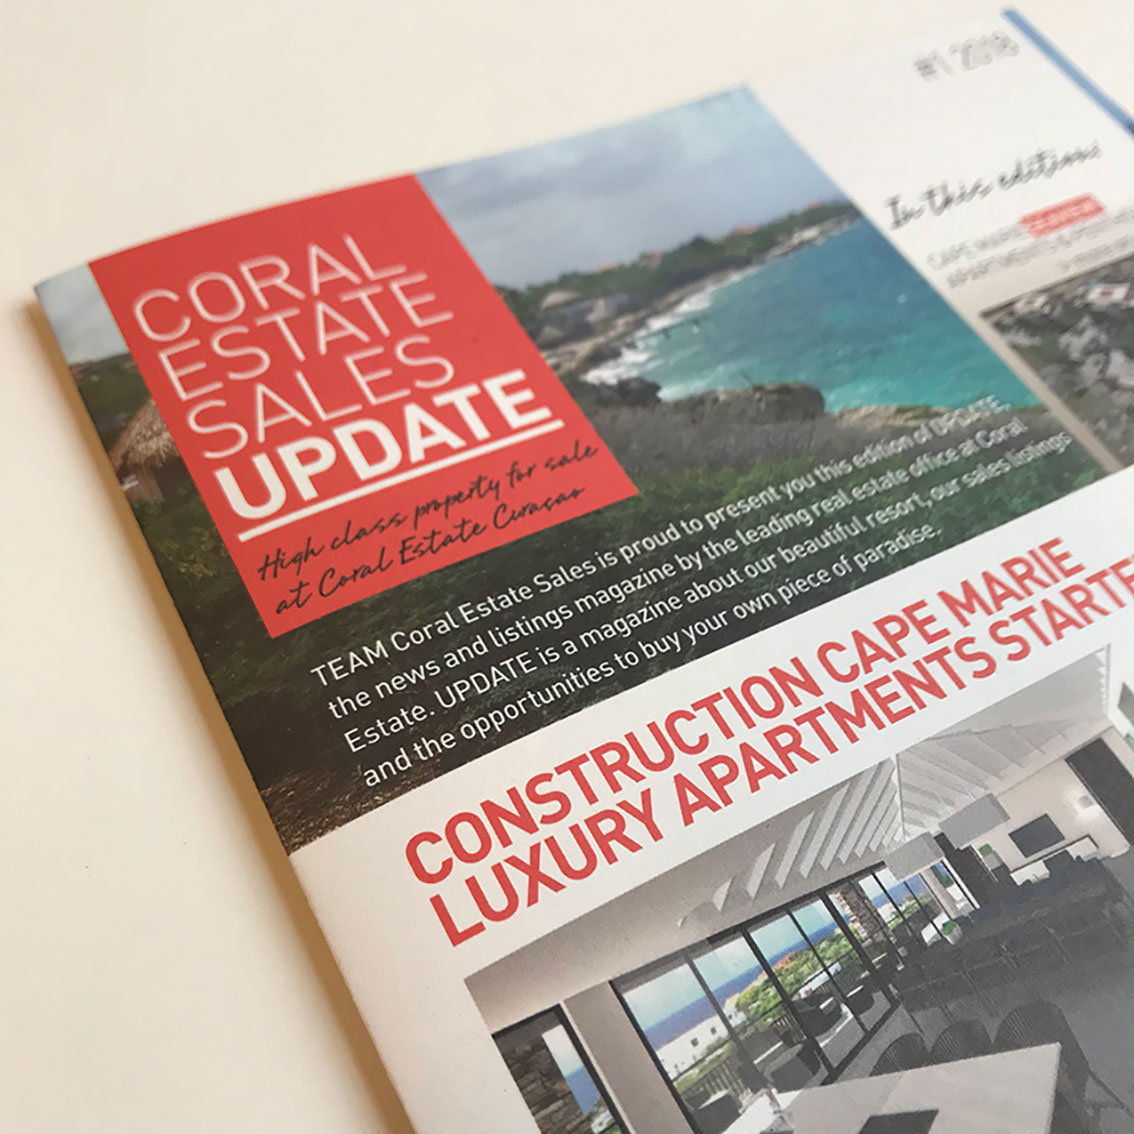 coral estate sales, up to date in 'update'